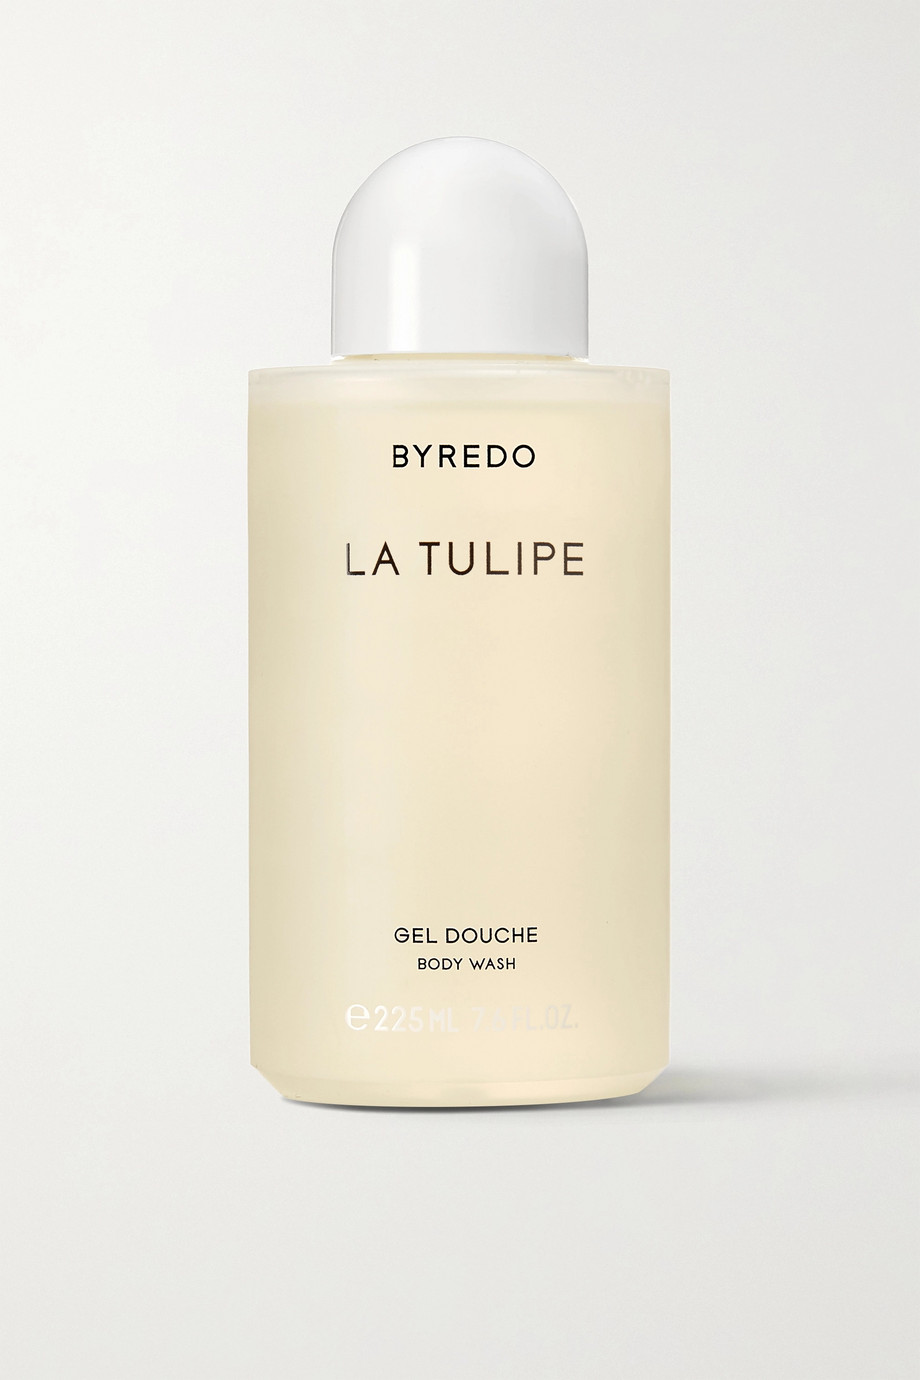 La Tulipe Body Wash, 225ml, by Byredo